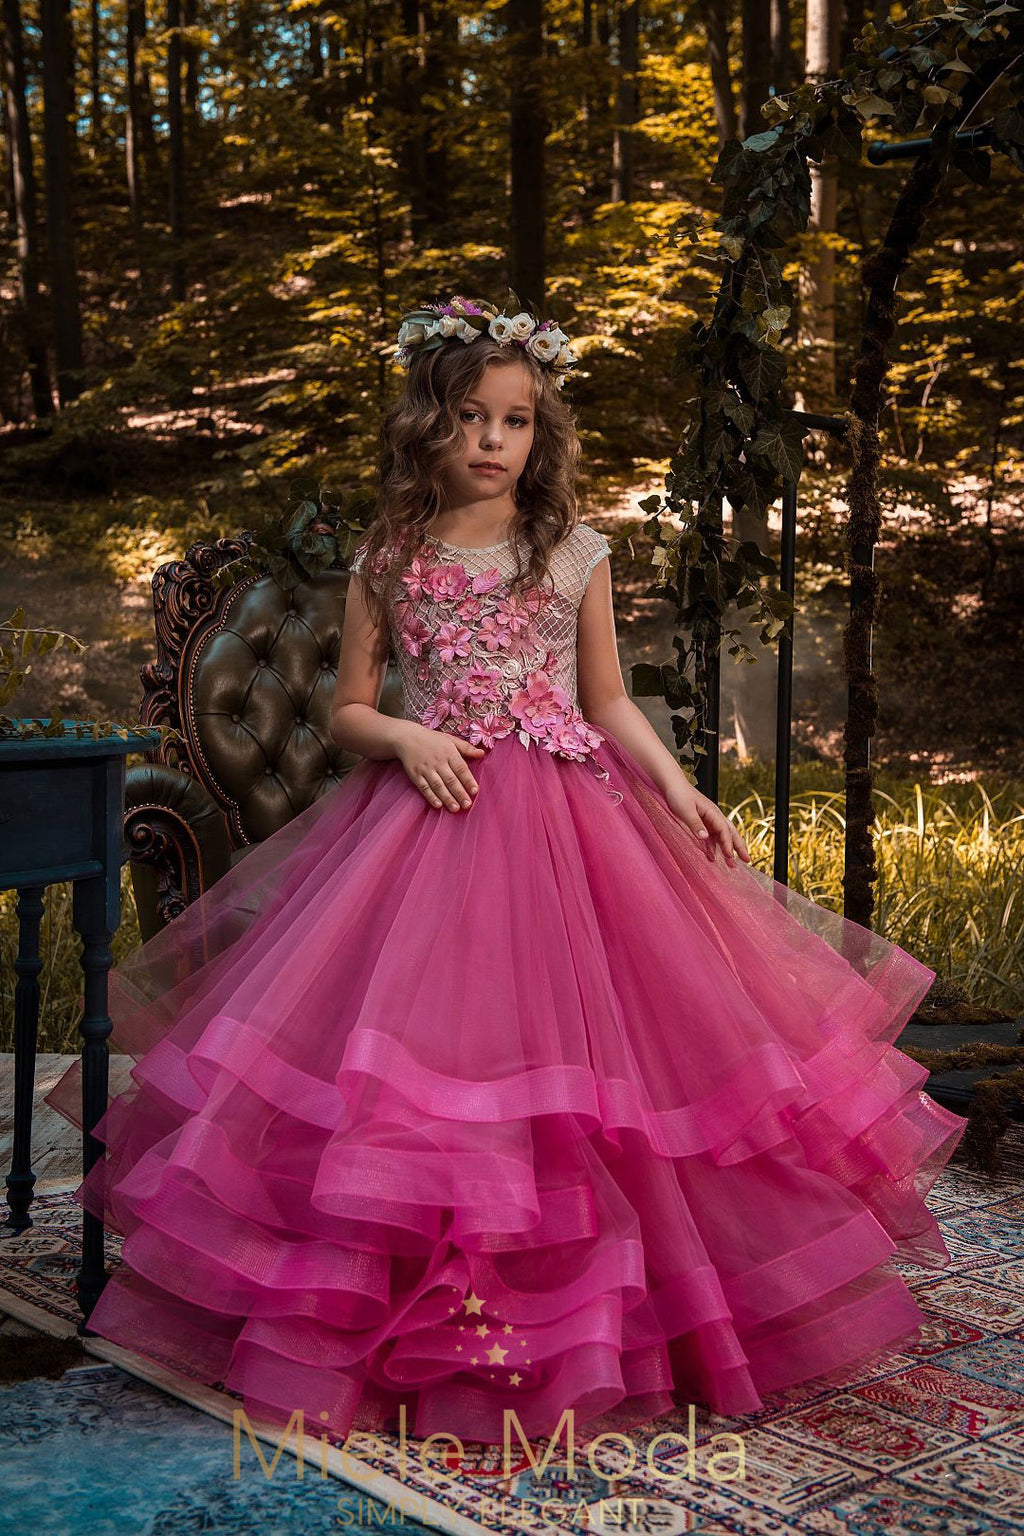 Kylissa Couture Princess Dress